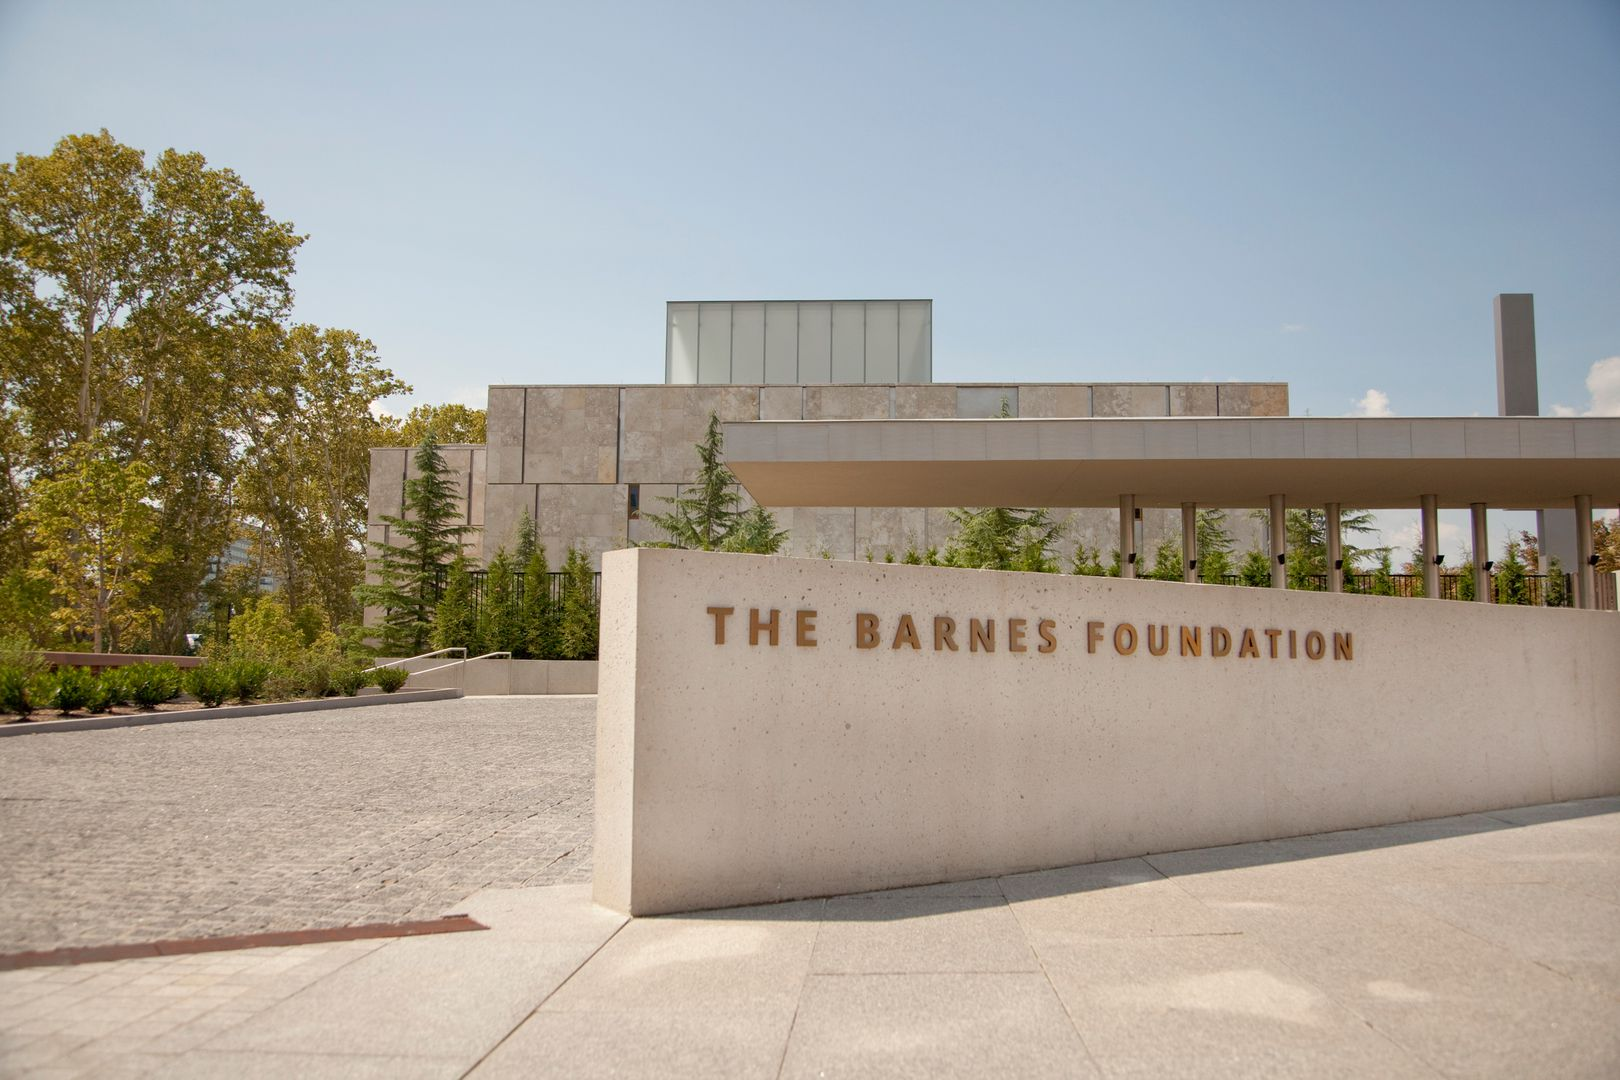 What Is The Barnes Foundation